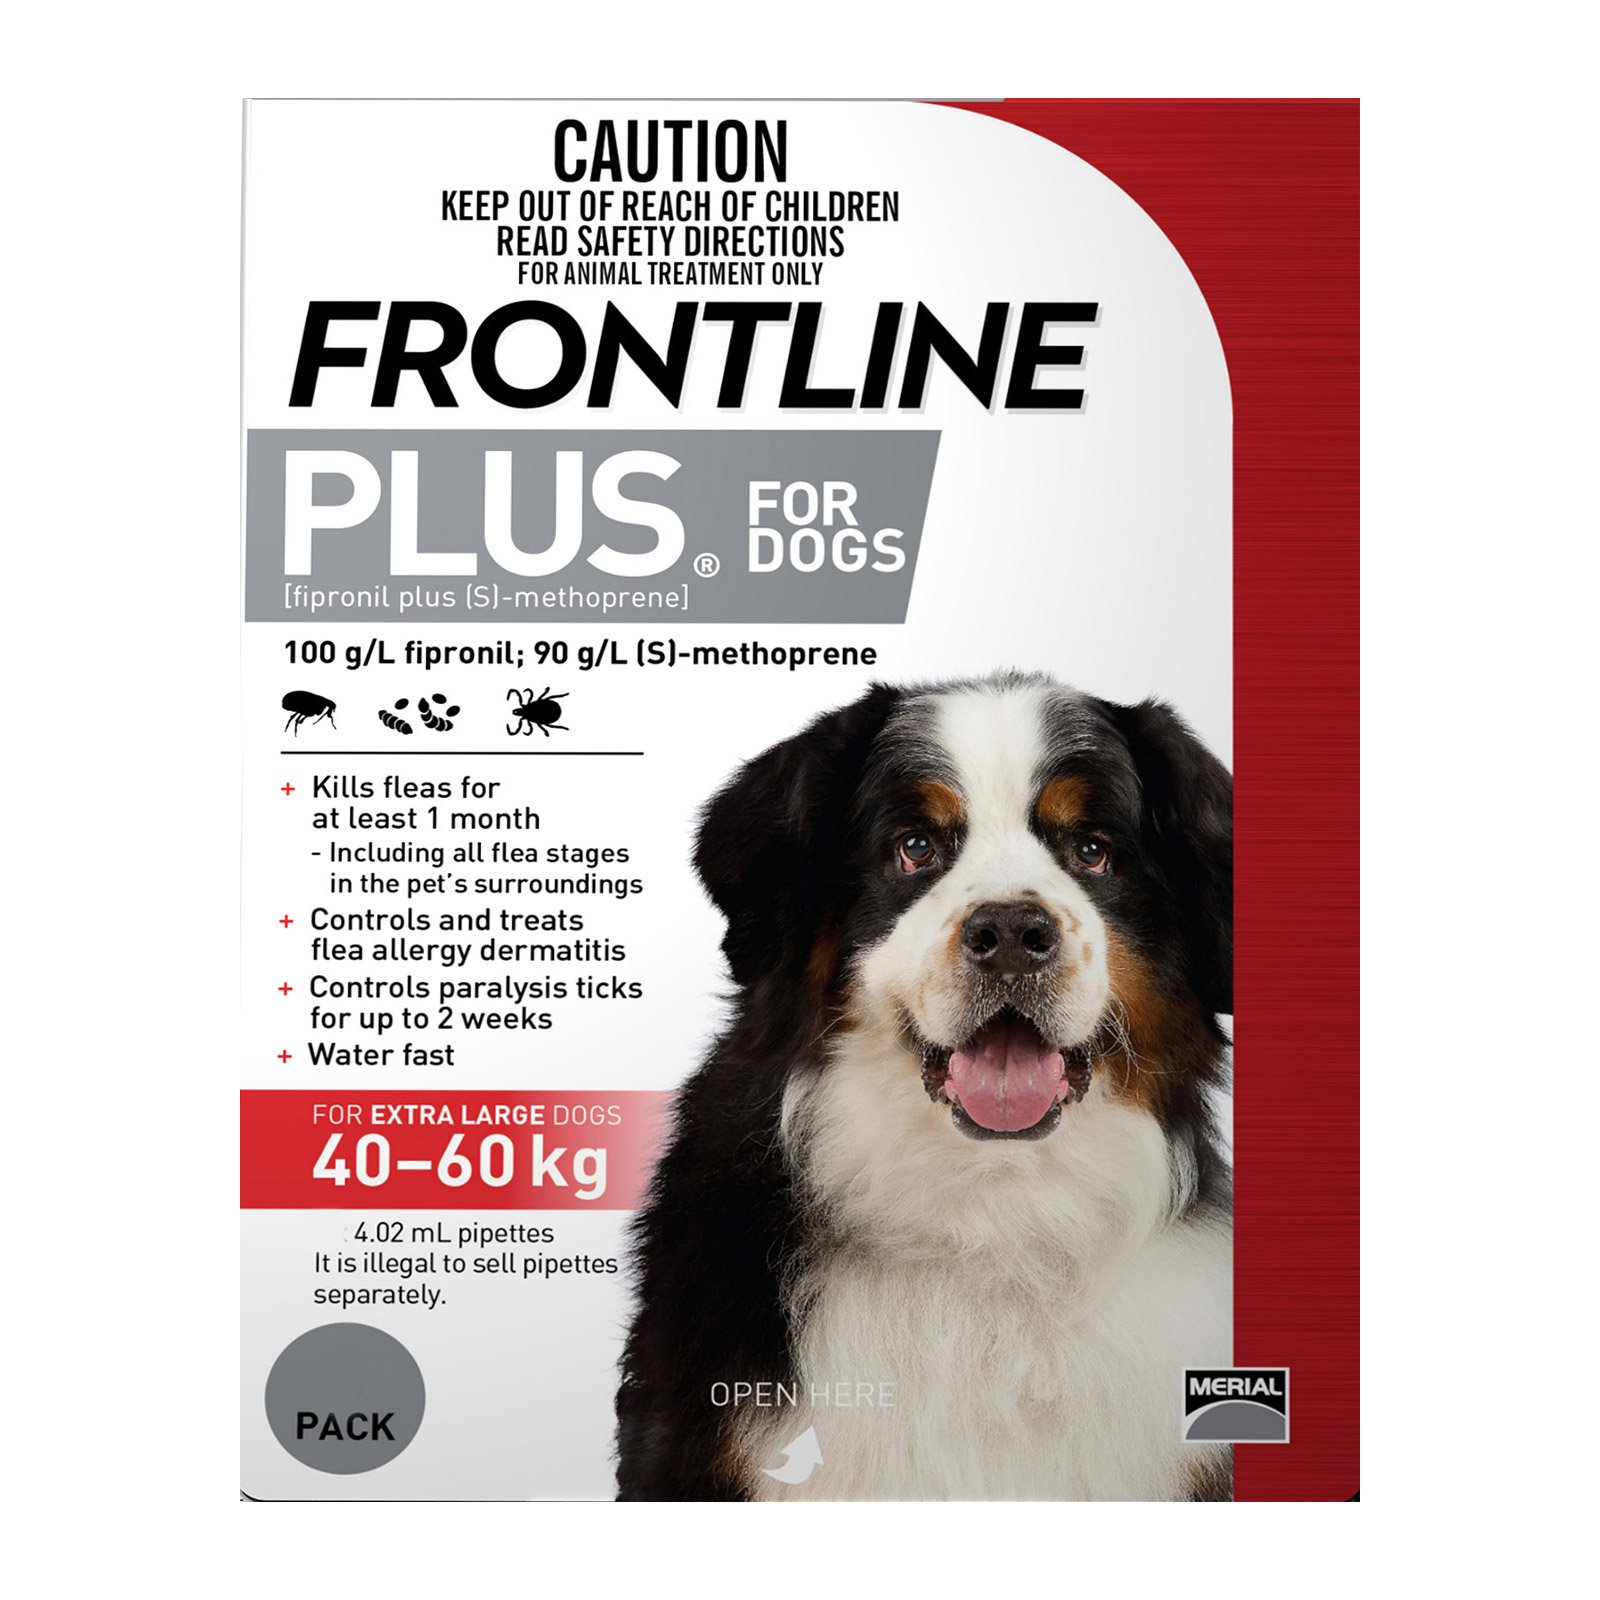 frontline-plus-for-extra-large-dogs-40-to-60kg-red.jpg